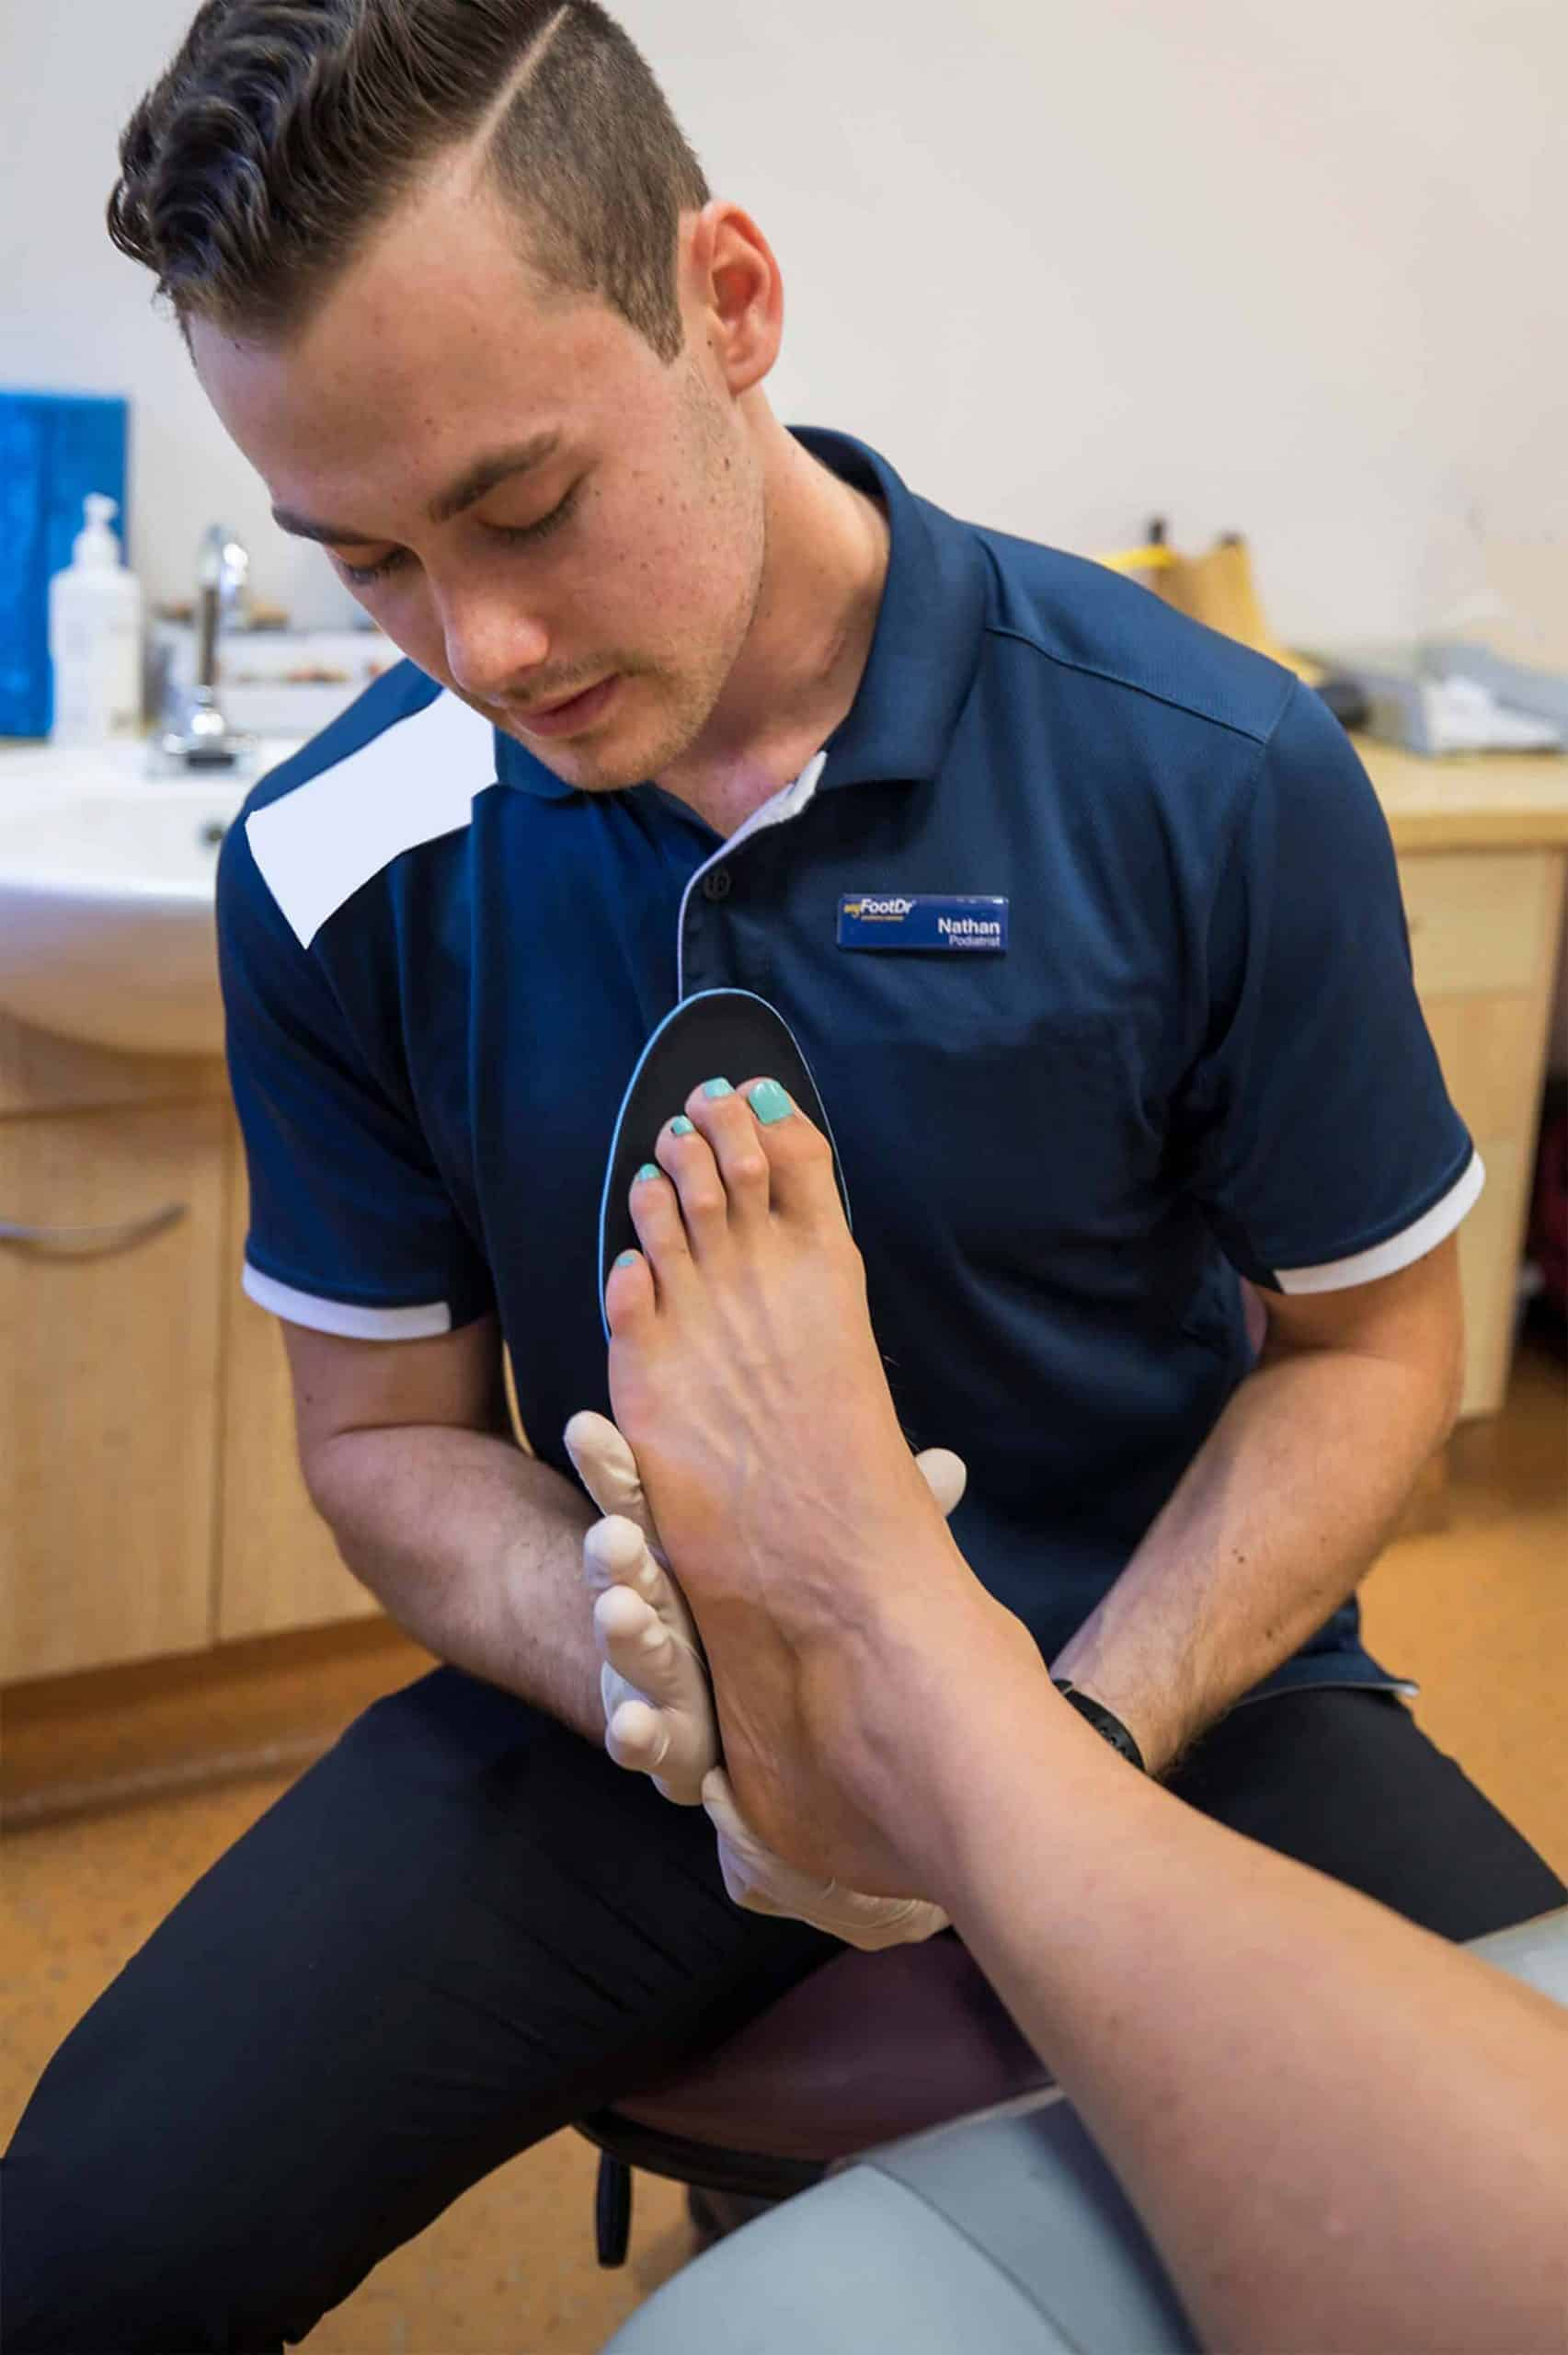 MyFootDr staff checking a patient's foot for custom foot orthotics